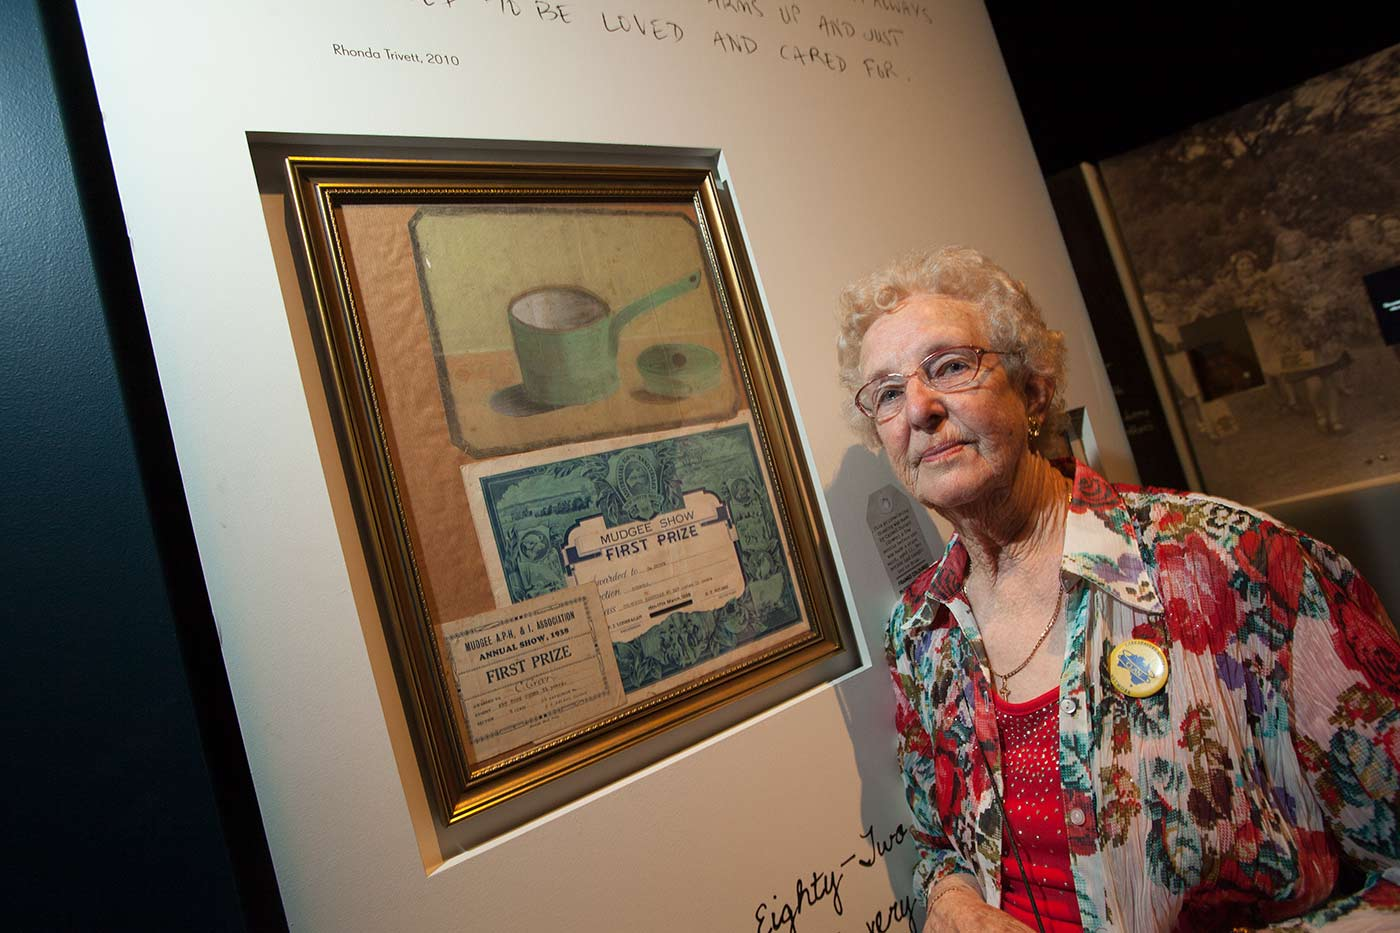 Colour photograph showing a woman standing beside a framed painting and two prize certificates.  - click to view larger image